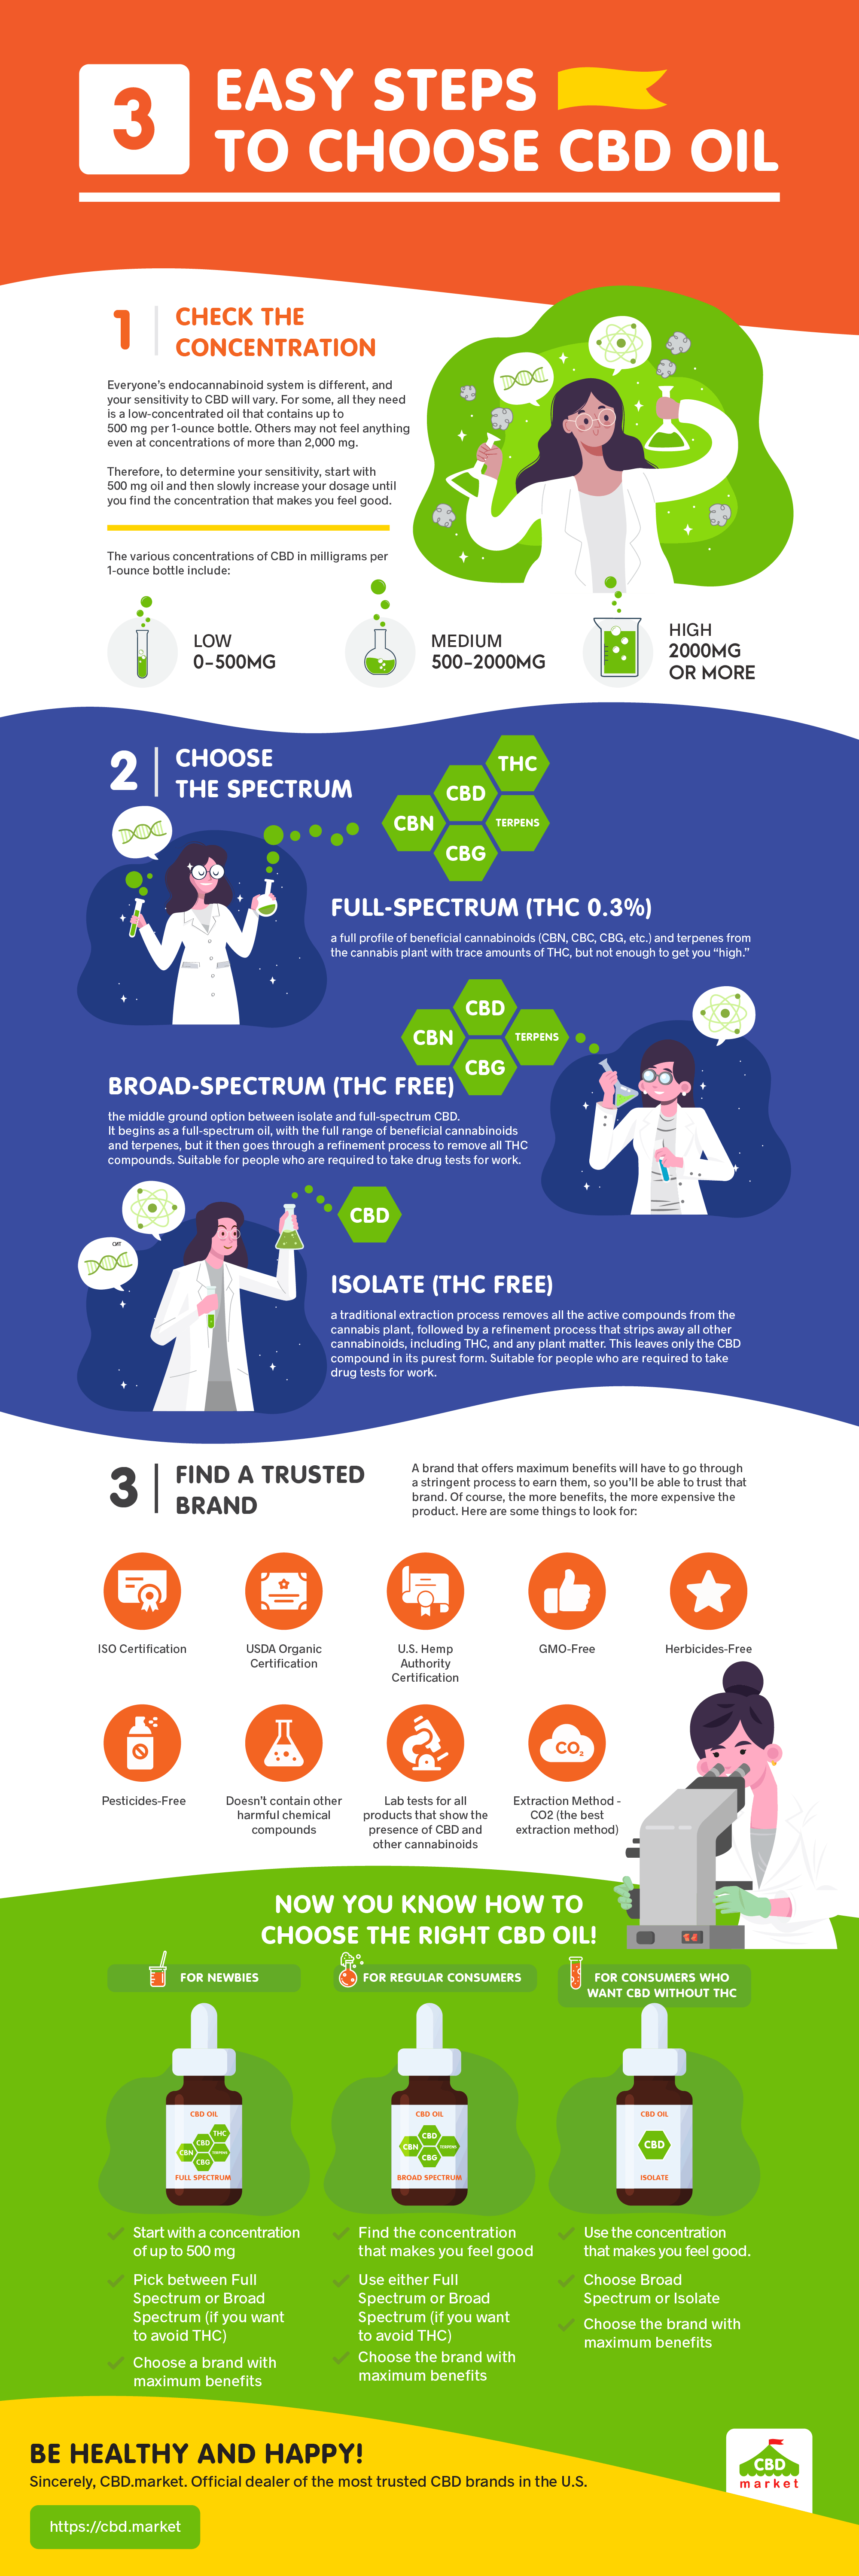 3 Easy Steps To Choose CBD Oil (Infographic)